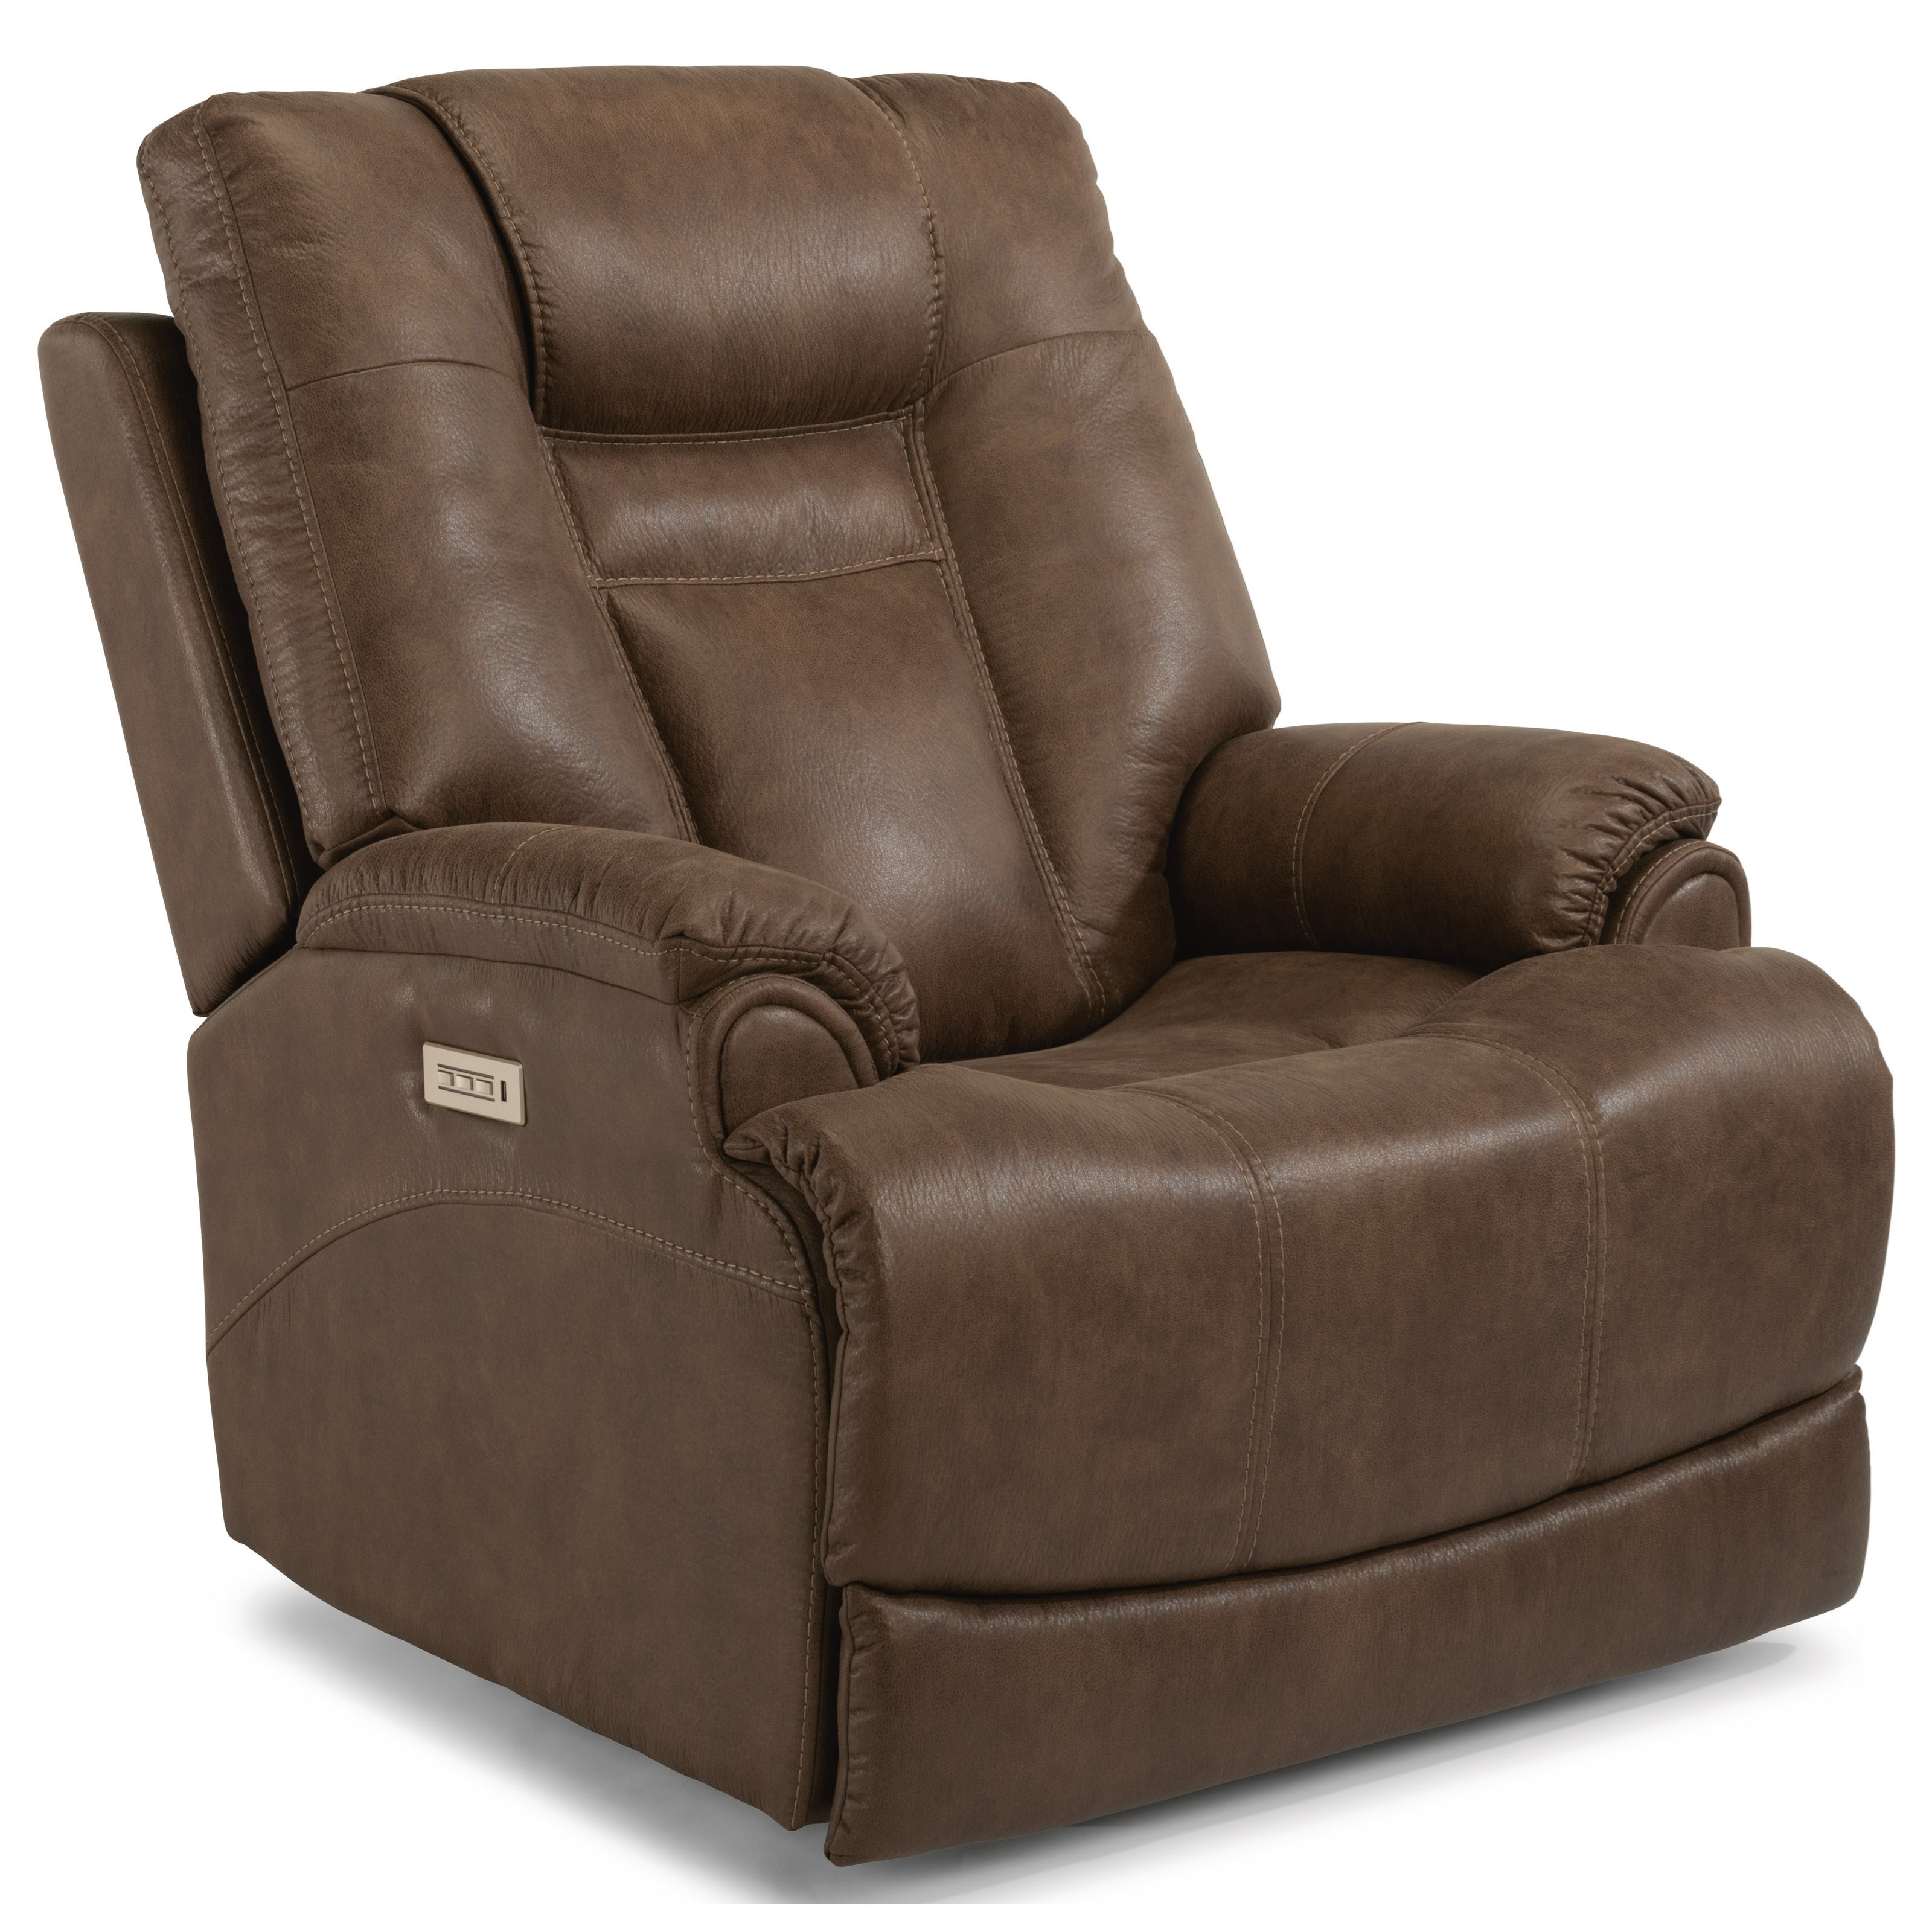 Flexsteel Marley Power Recliner with Power Headrest - Item Number: 1714-50PH-814-72